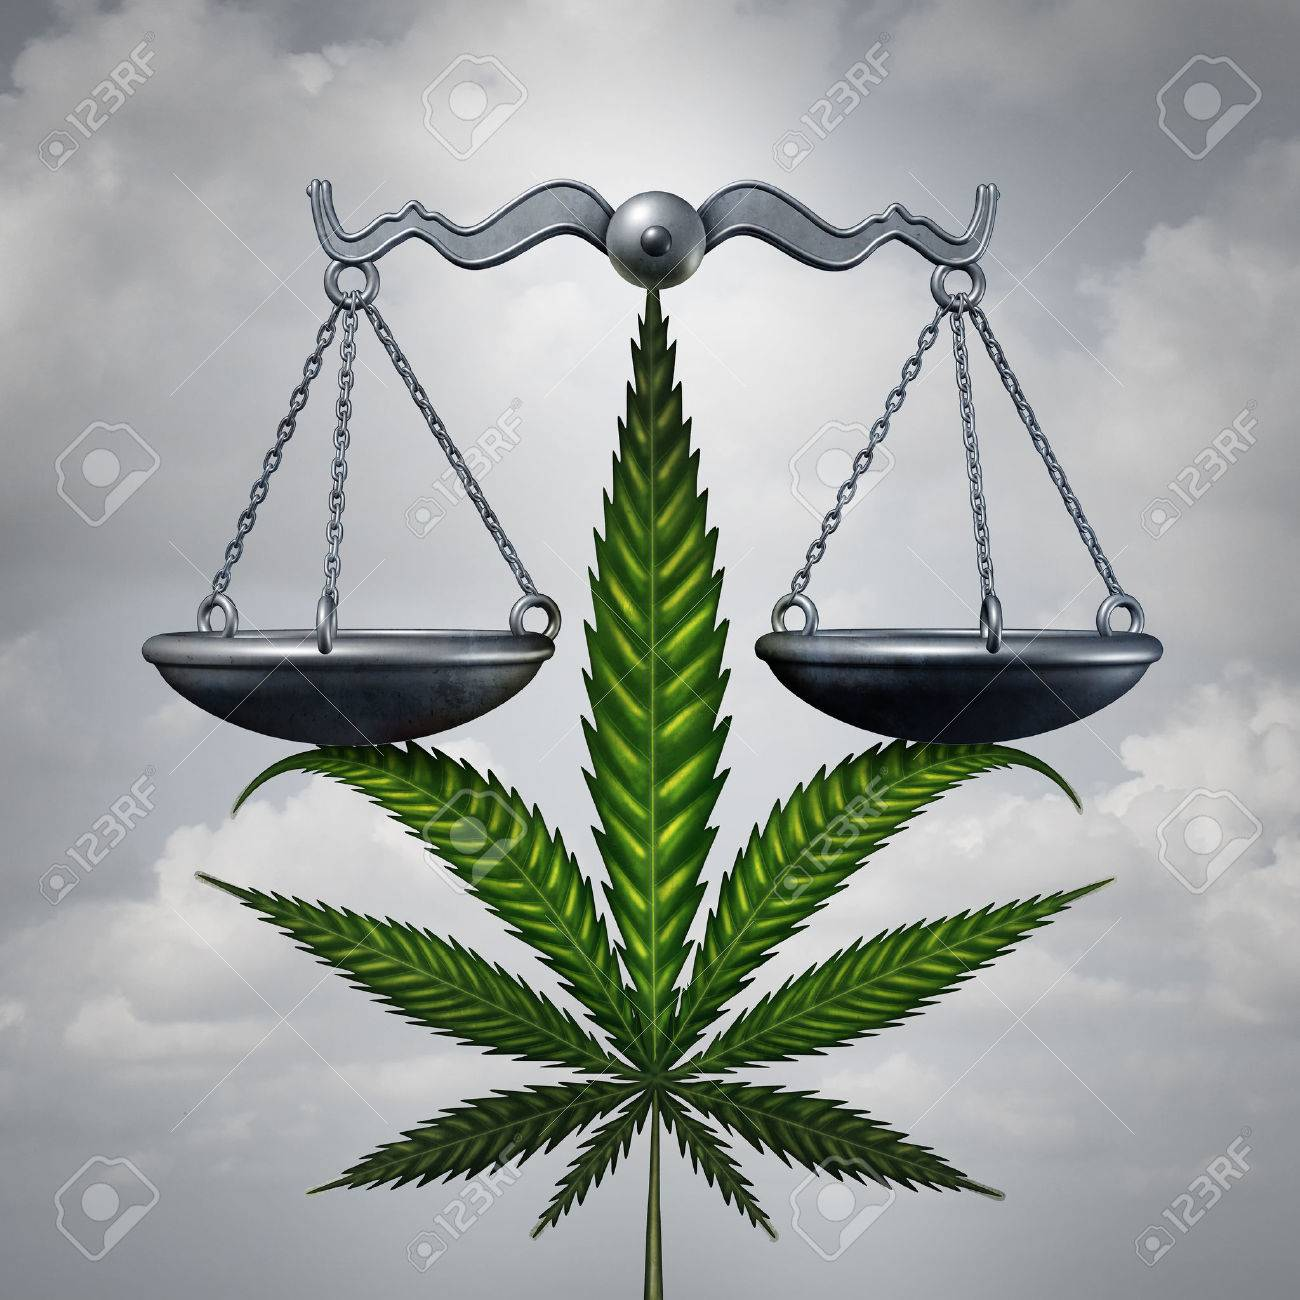 Marijuana law concept as a cannabis leaf holding up a justice scale as a medicinal or recreational drug legalization social issue symbol with 3D illustration elements. Standard-Bild - 68416502